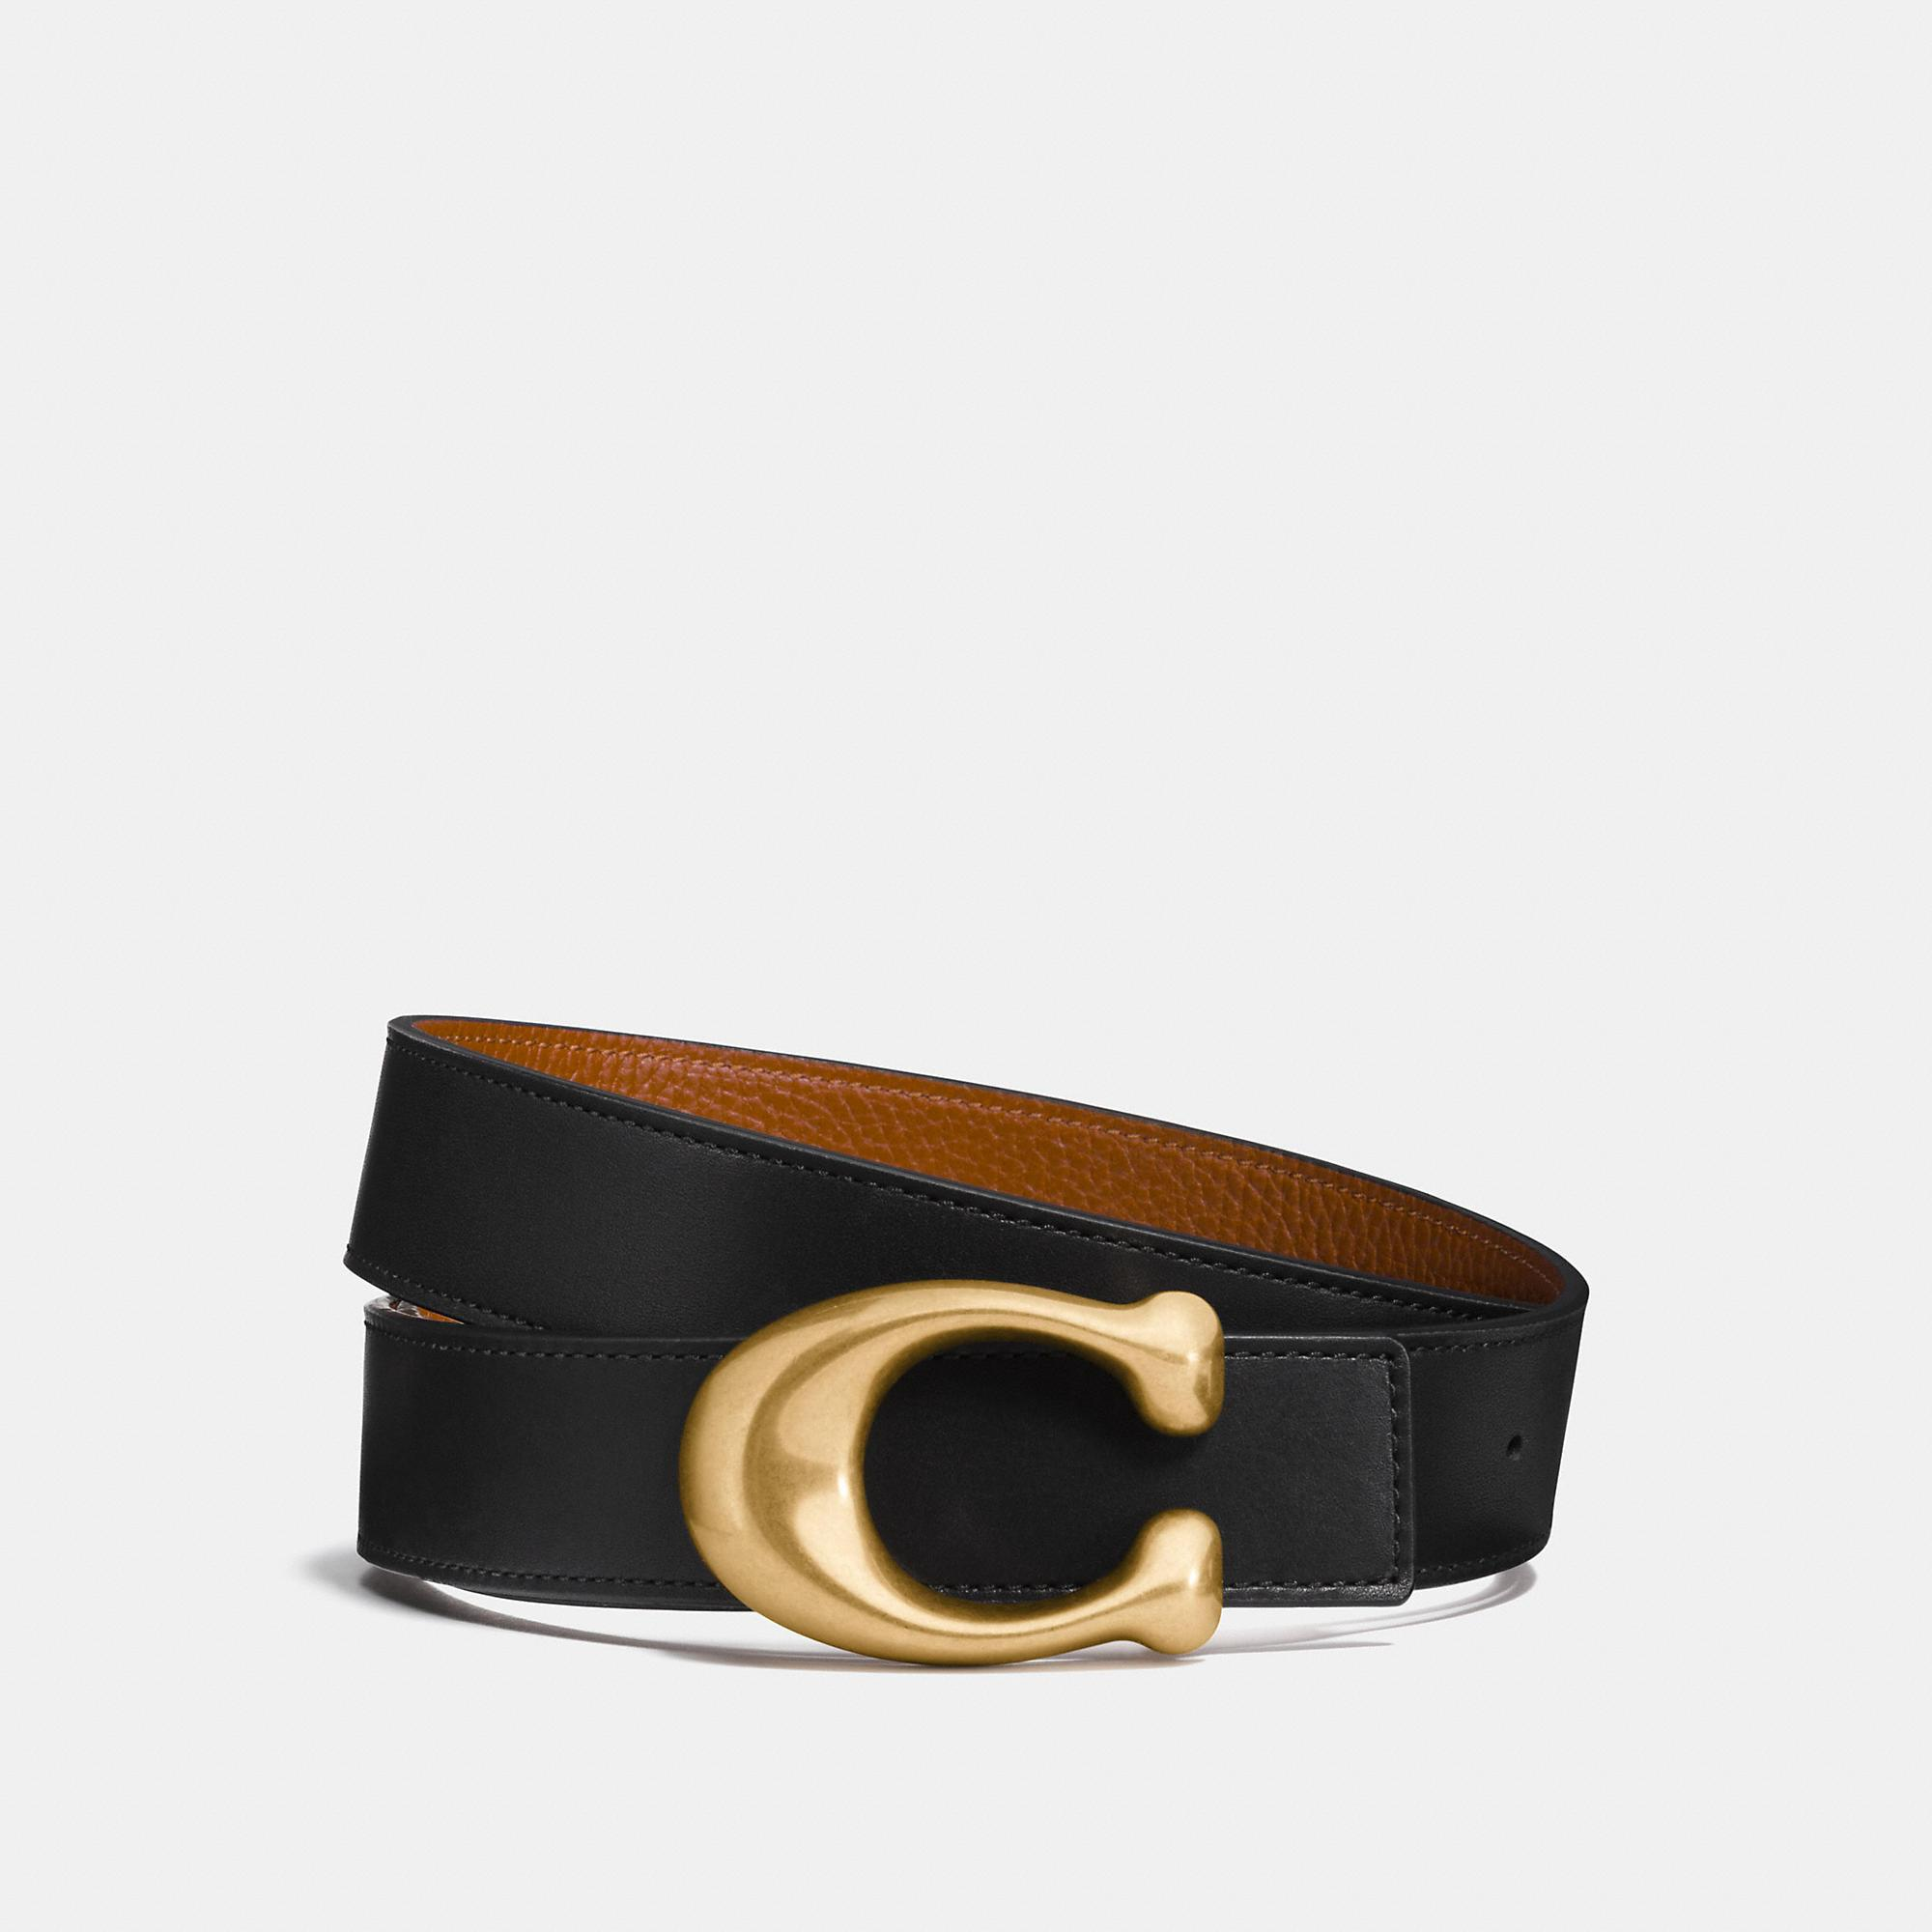 Coach Sculpted Signature Reversible Belt In Black/1941 Saddle/brass